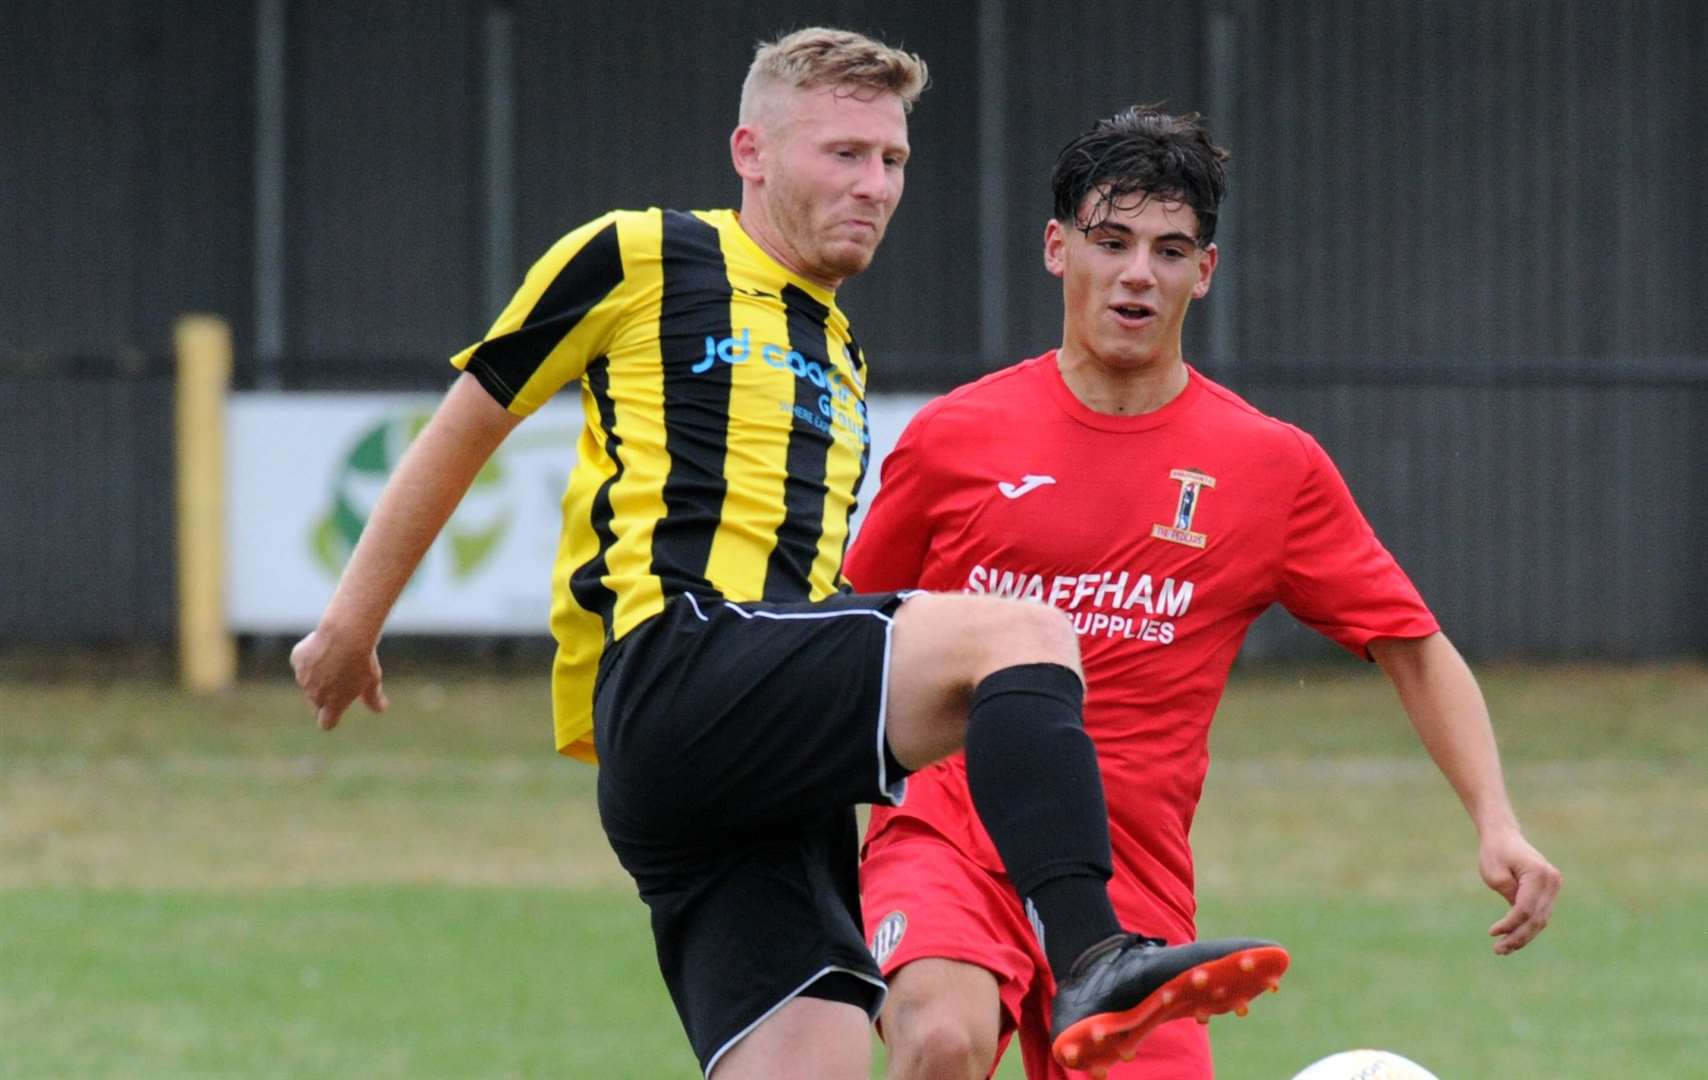 Luke Wilson opened the scoring for Holbeach United at Boston Town on Tuesday night.Photo by Chris Lowndes.